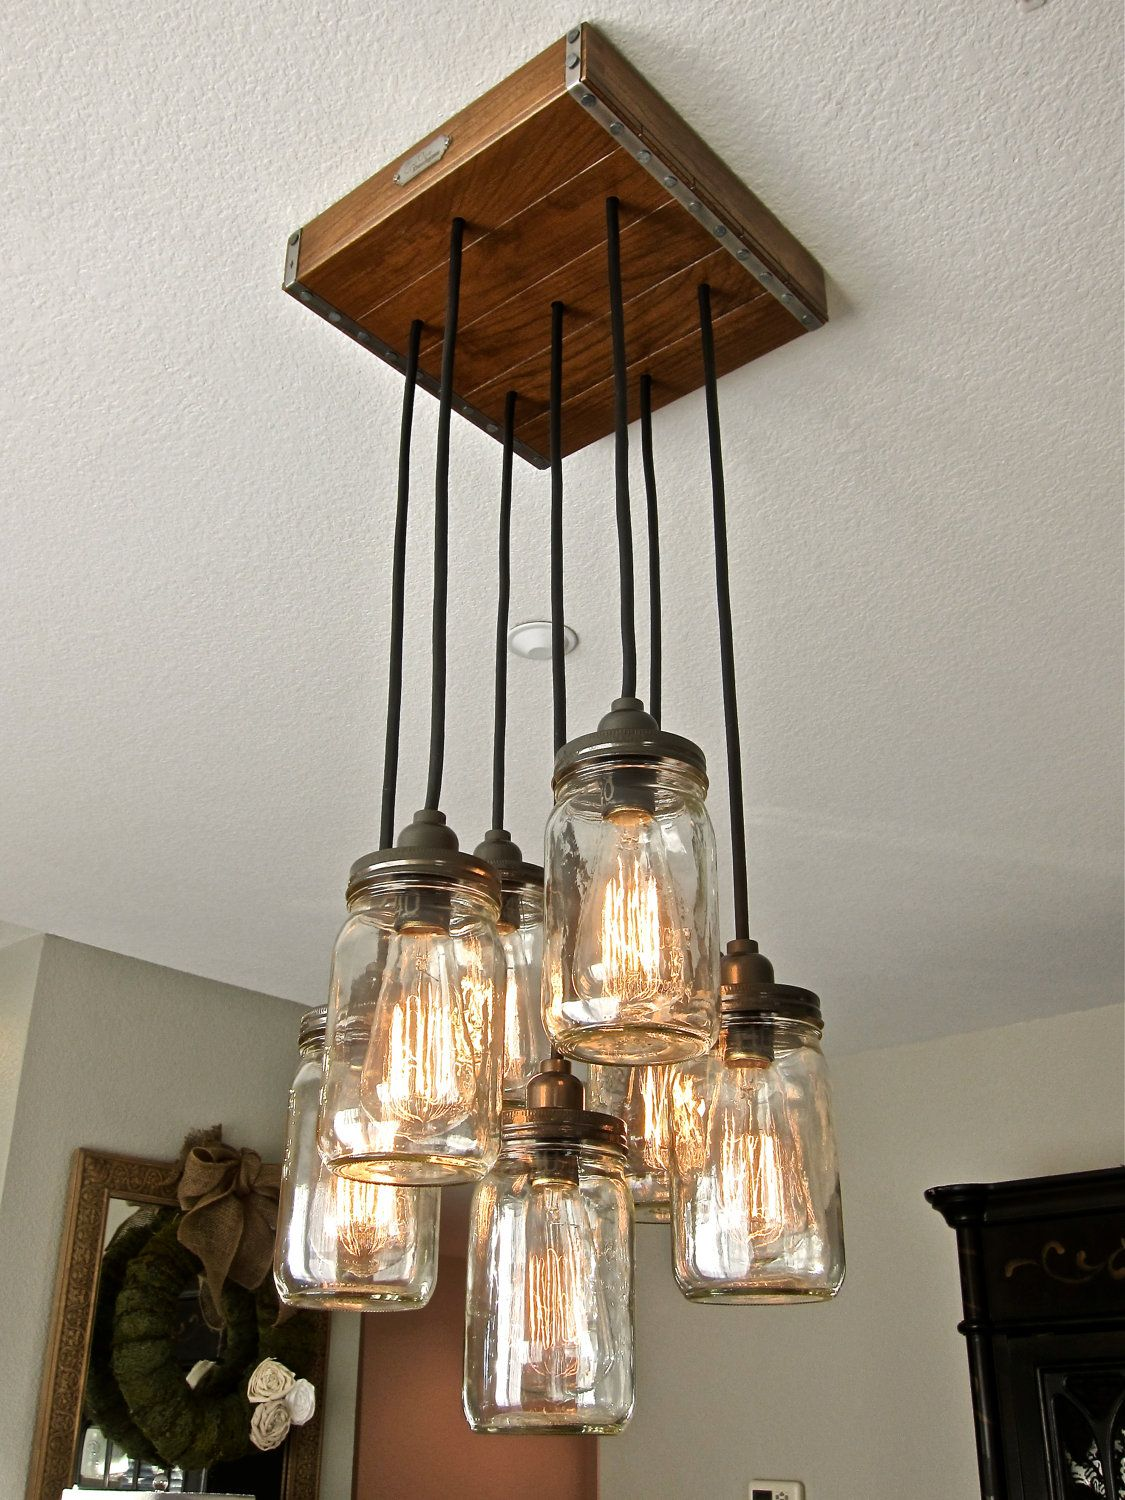 Mason Jar Pendant Light Chandelier w/ Rustic by zoeveedesigns $489.00 & Mason Jar Pendant Light Chandelier w/ Rustic by zoeveedesigns ... azcodes.com